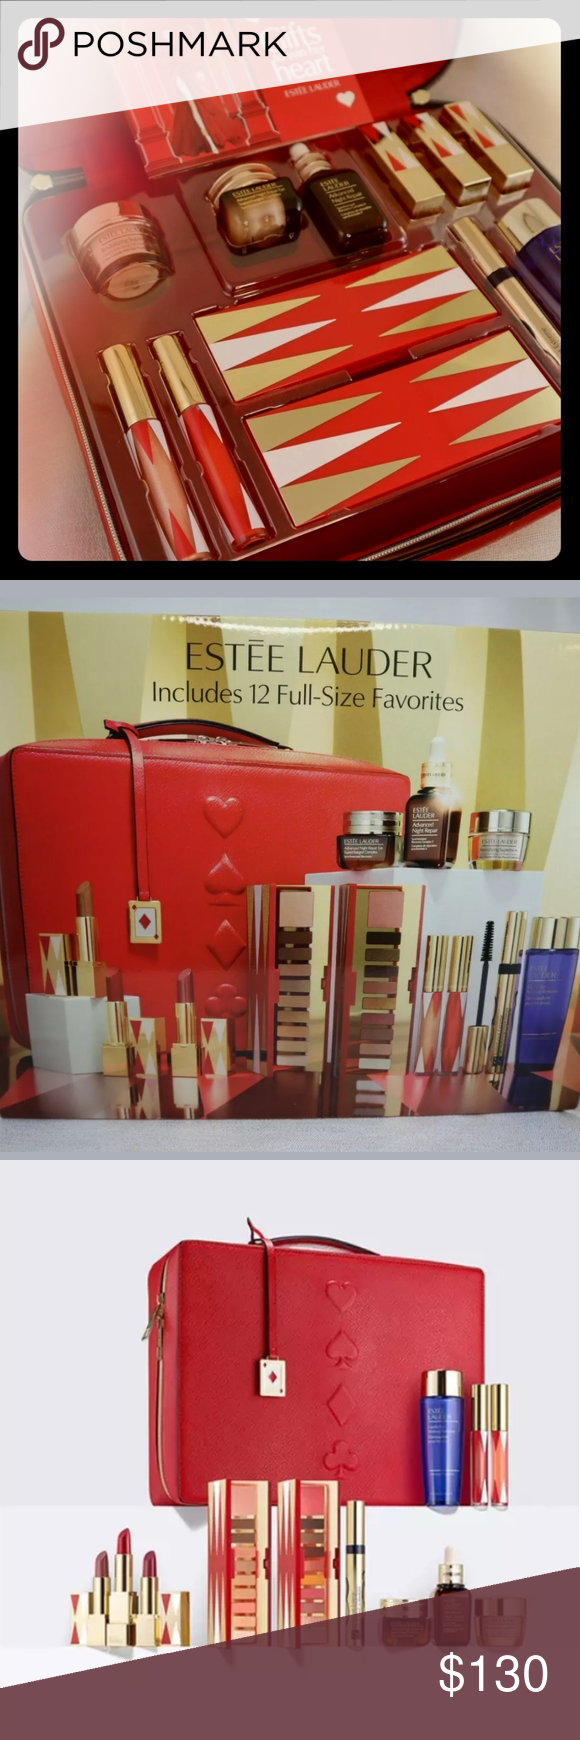 Estee Lauder 2019 12 Full Size Piece Gift Set This is the